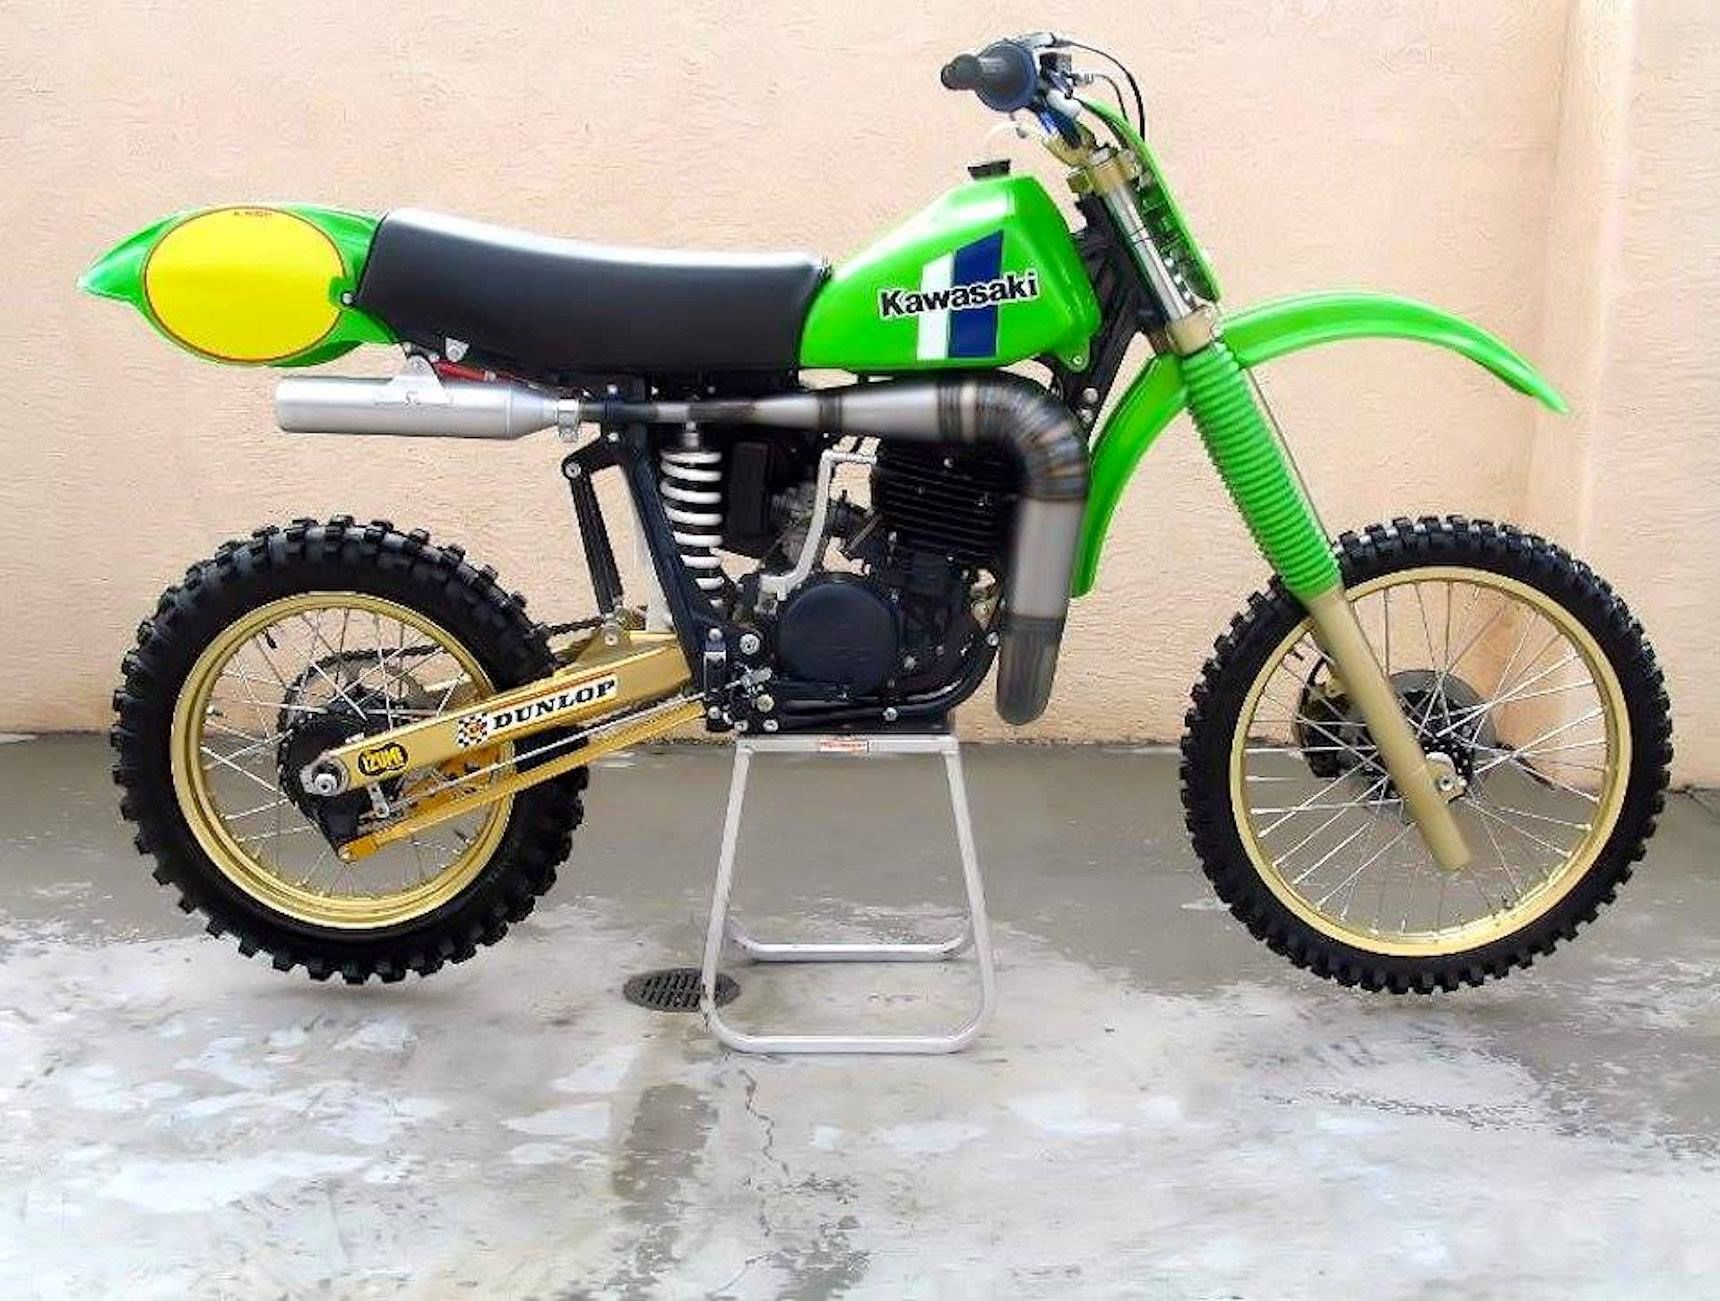 Kawasaki Sr 500 1981 Dave Thorpe Vintage Racing Bike Retro Bike Vintage Bicycles Vintage Motocross